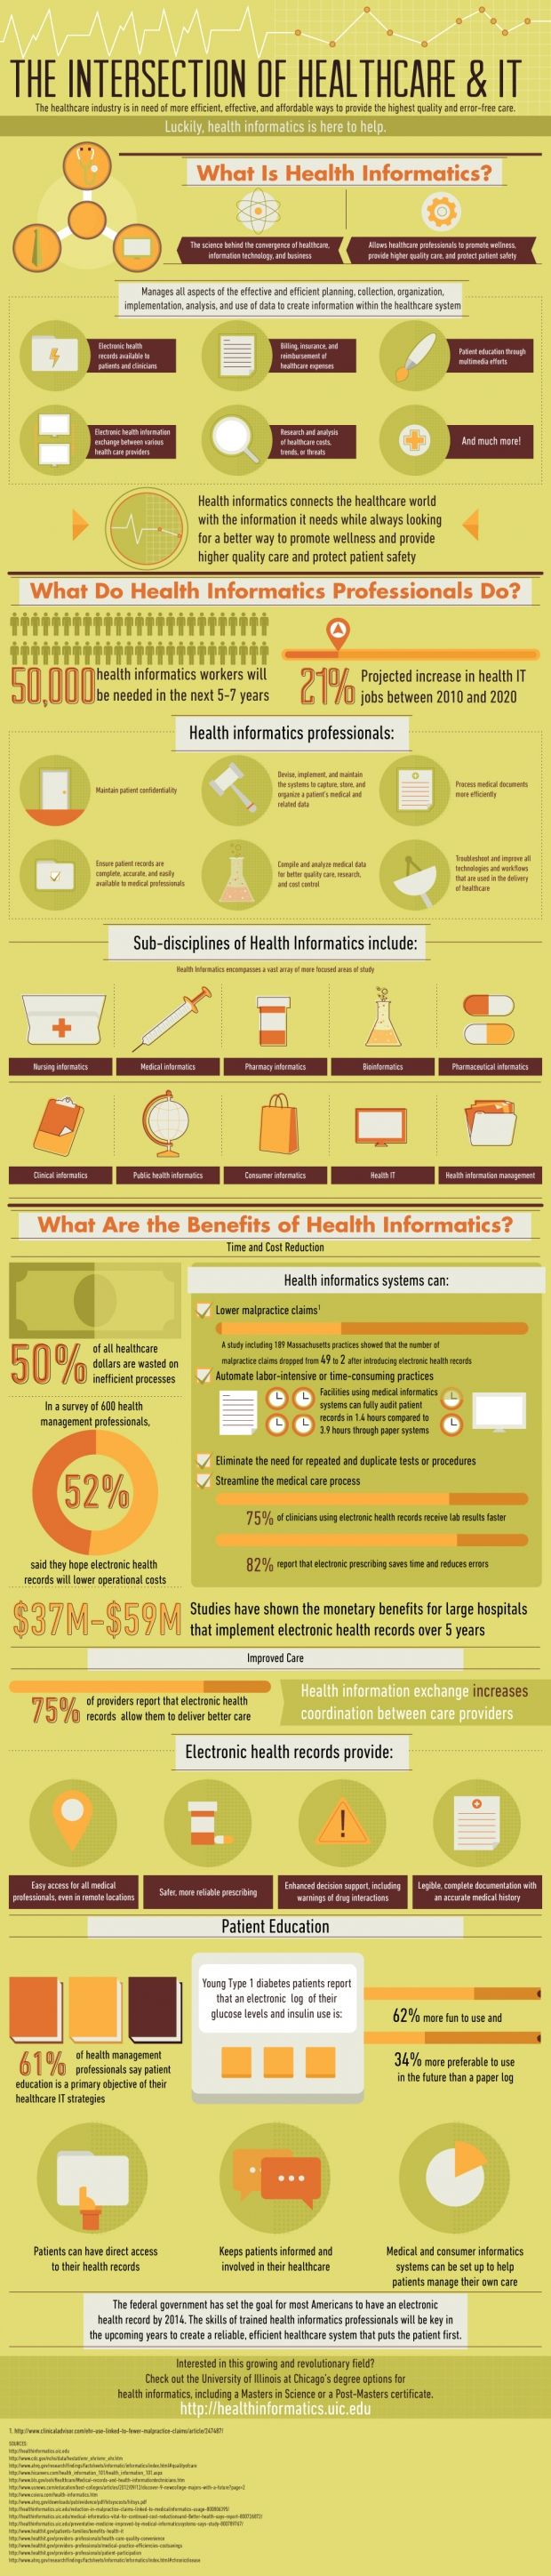 health and IT